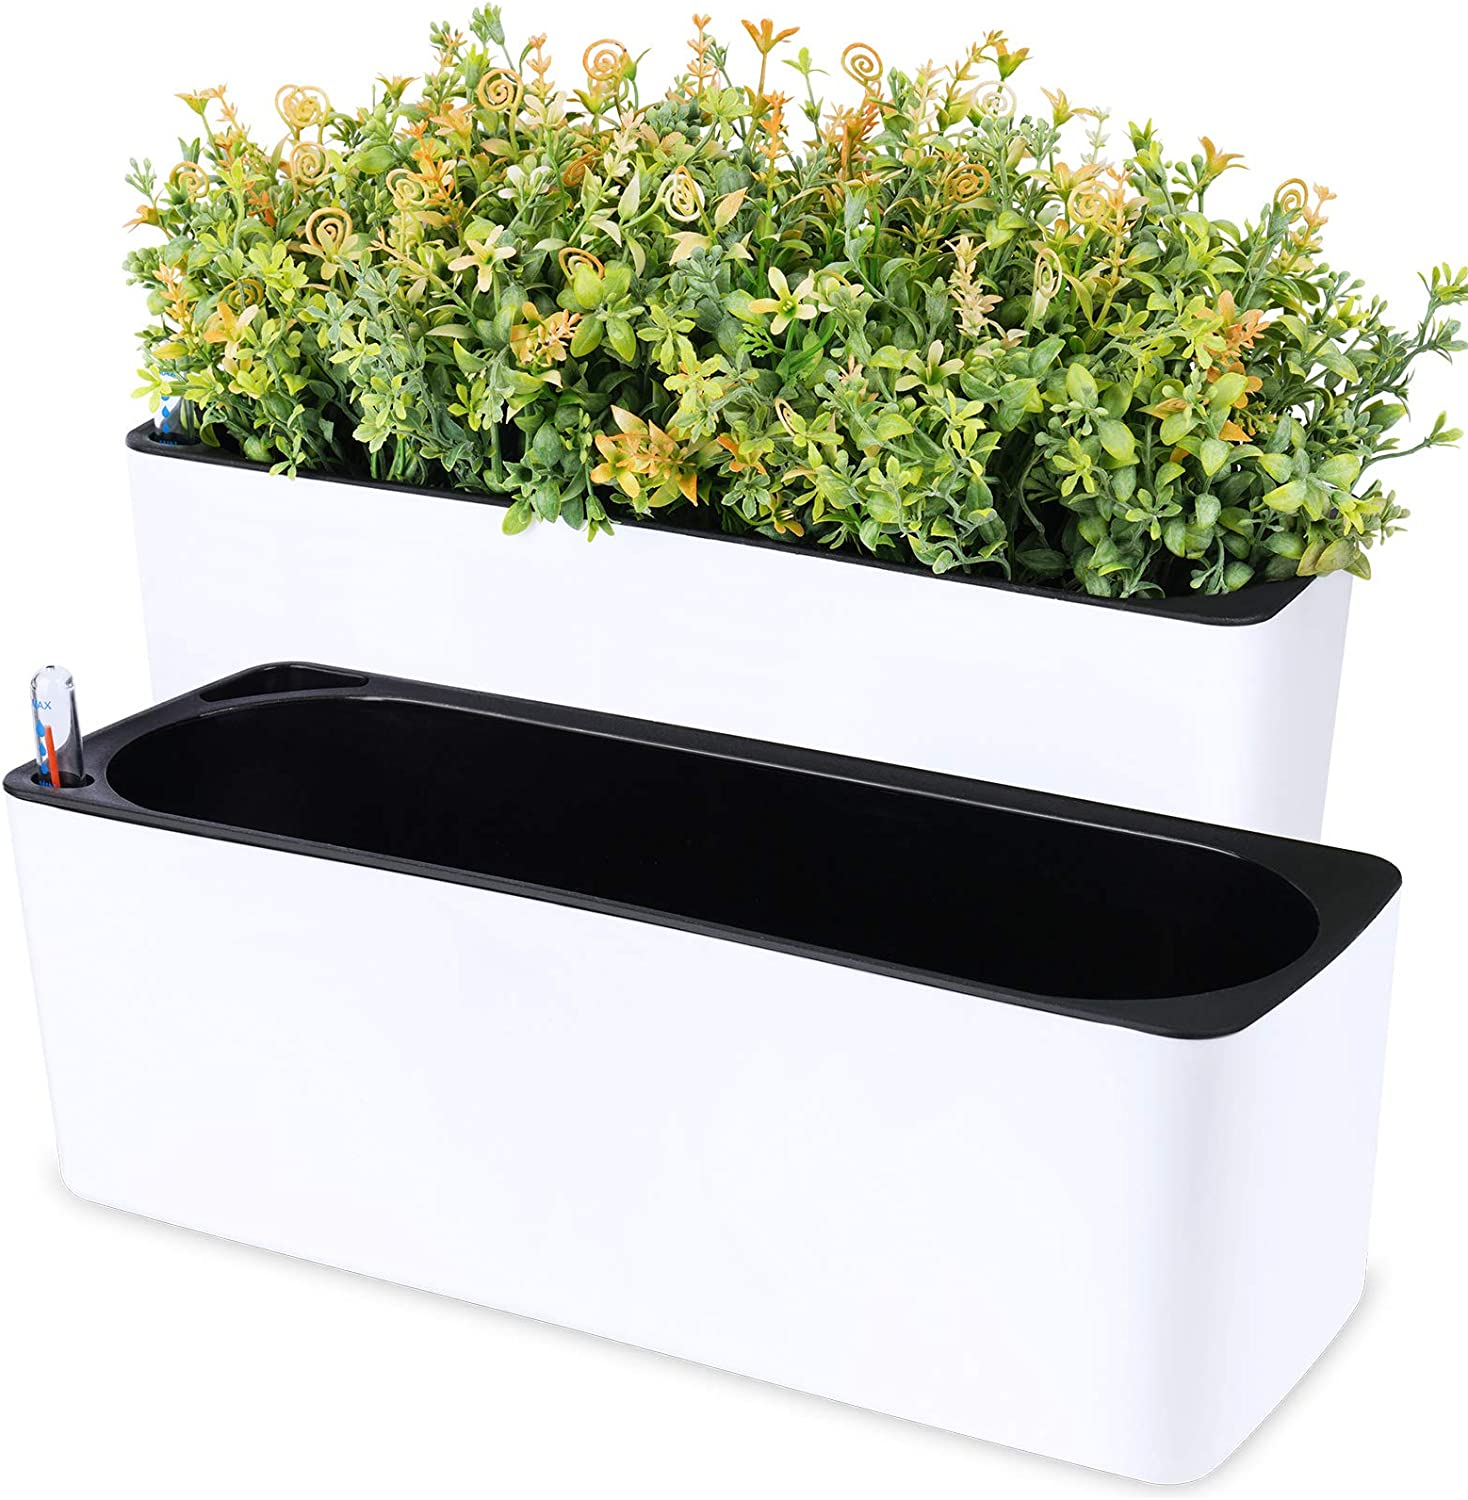 NiHome 2-Pack Self-Watering Planter Set Rectangle Worry-Free Water Inlet Water Gauge Indicator Observation Window Drainage Plug 2-Layer Separation Home Garden Decor Green Plants Herbs Vegetables Attom